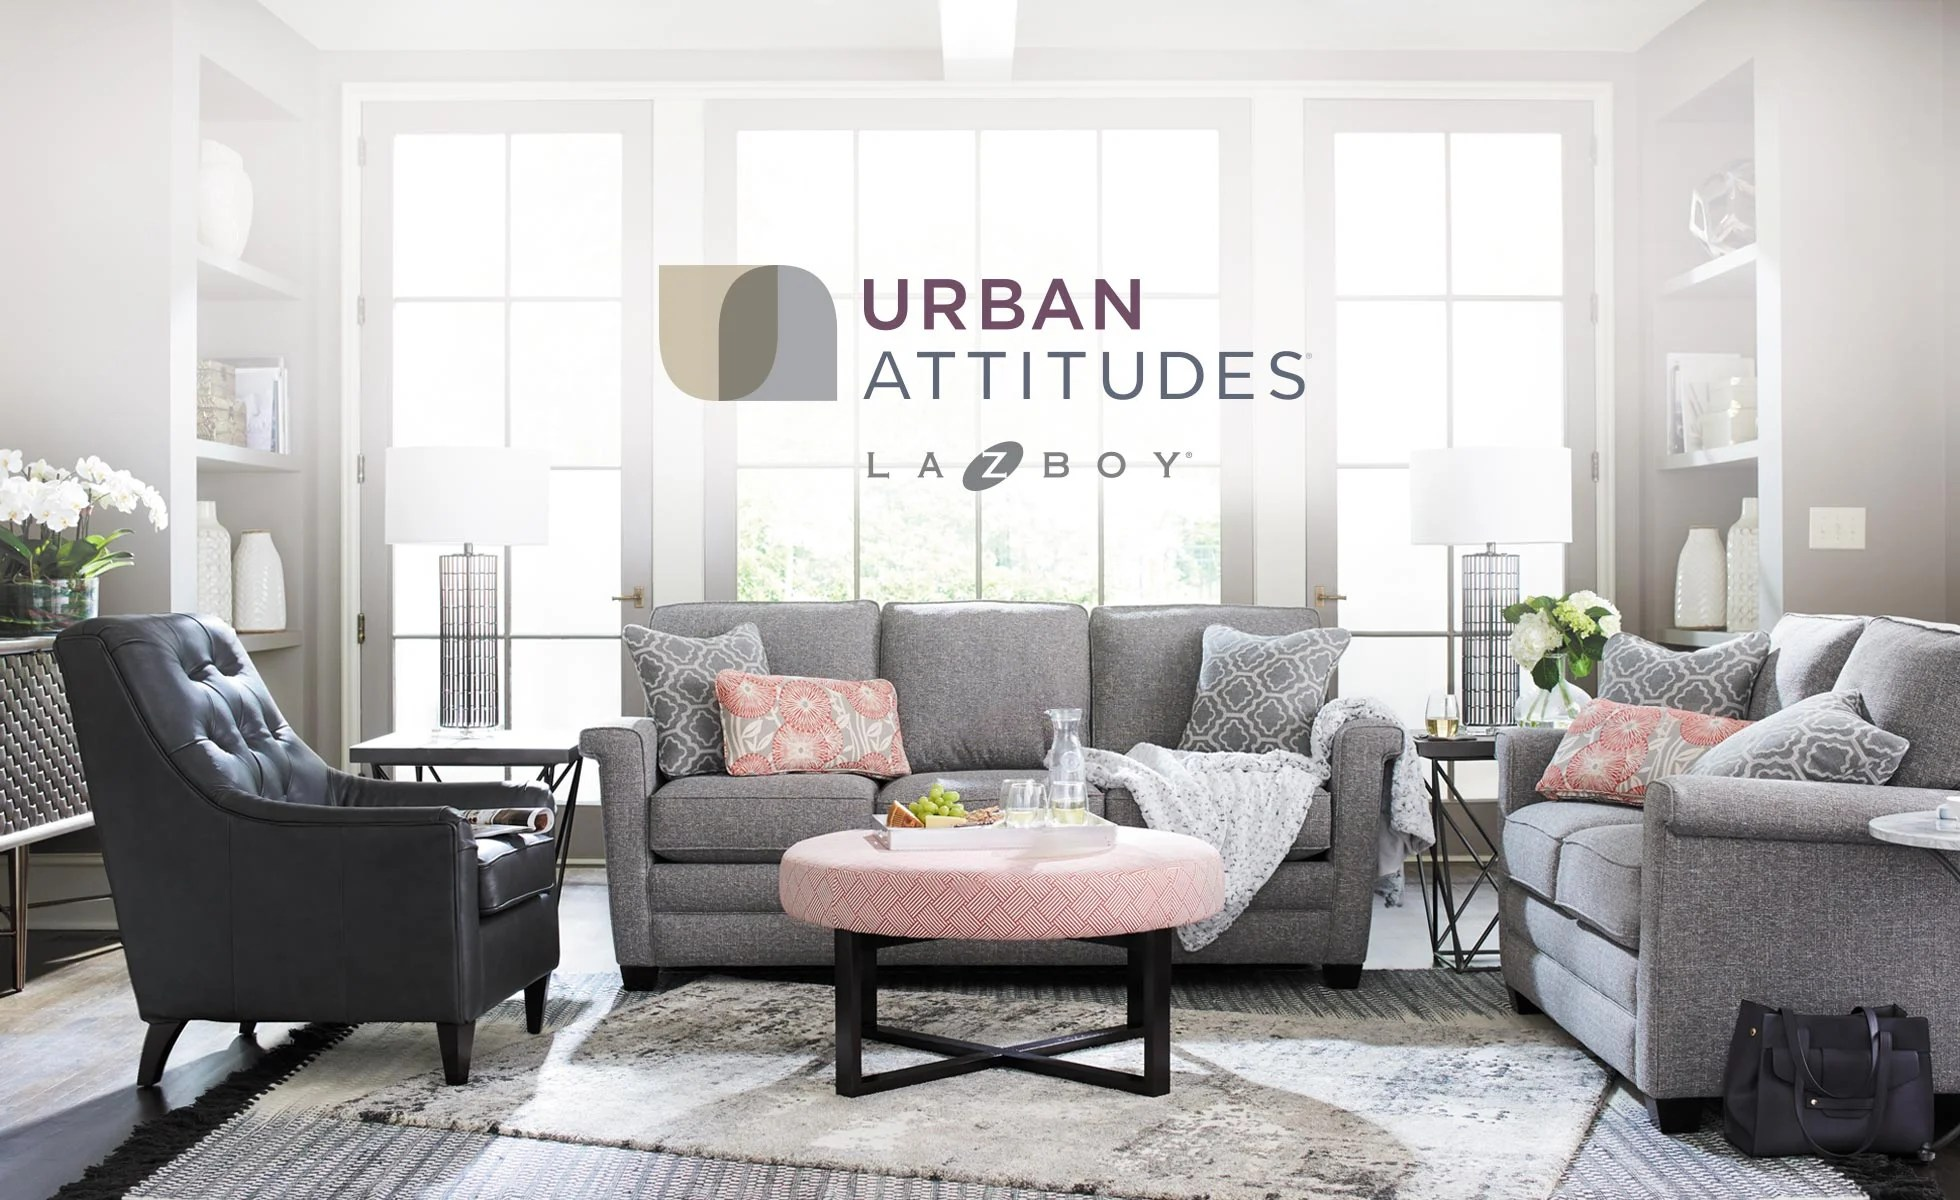 Urban Sofa Live Edge Urban Attitudes Room Design Made Simple La Z Boy